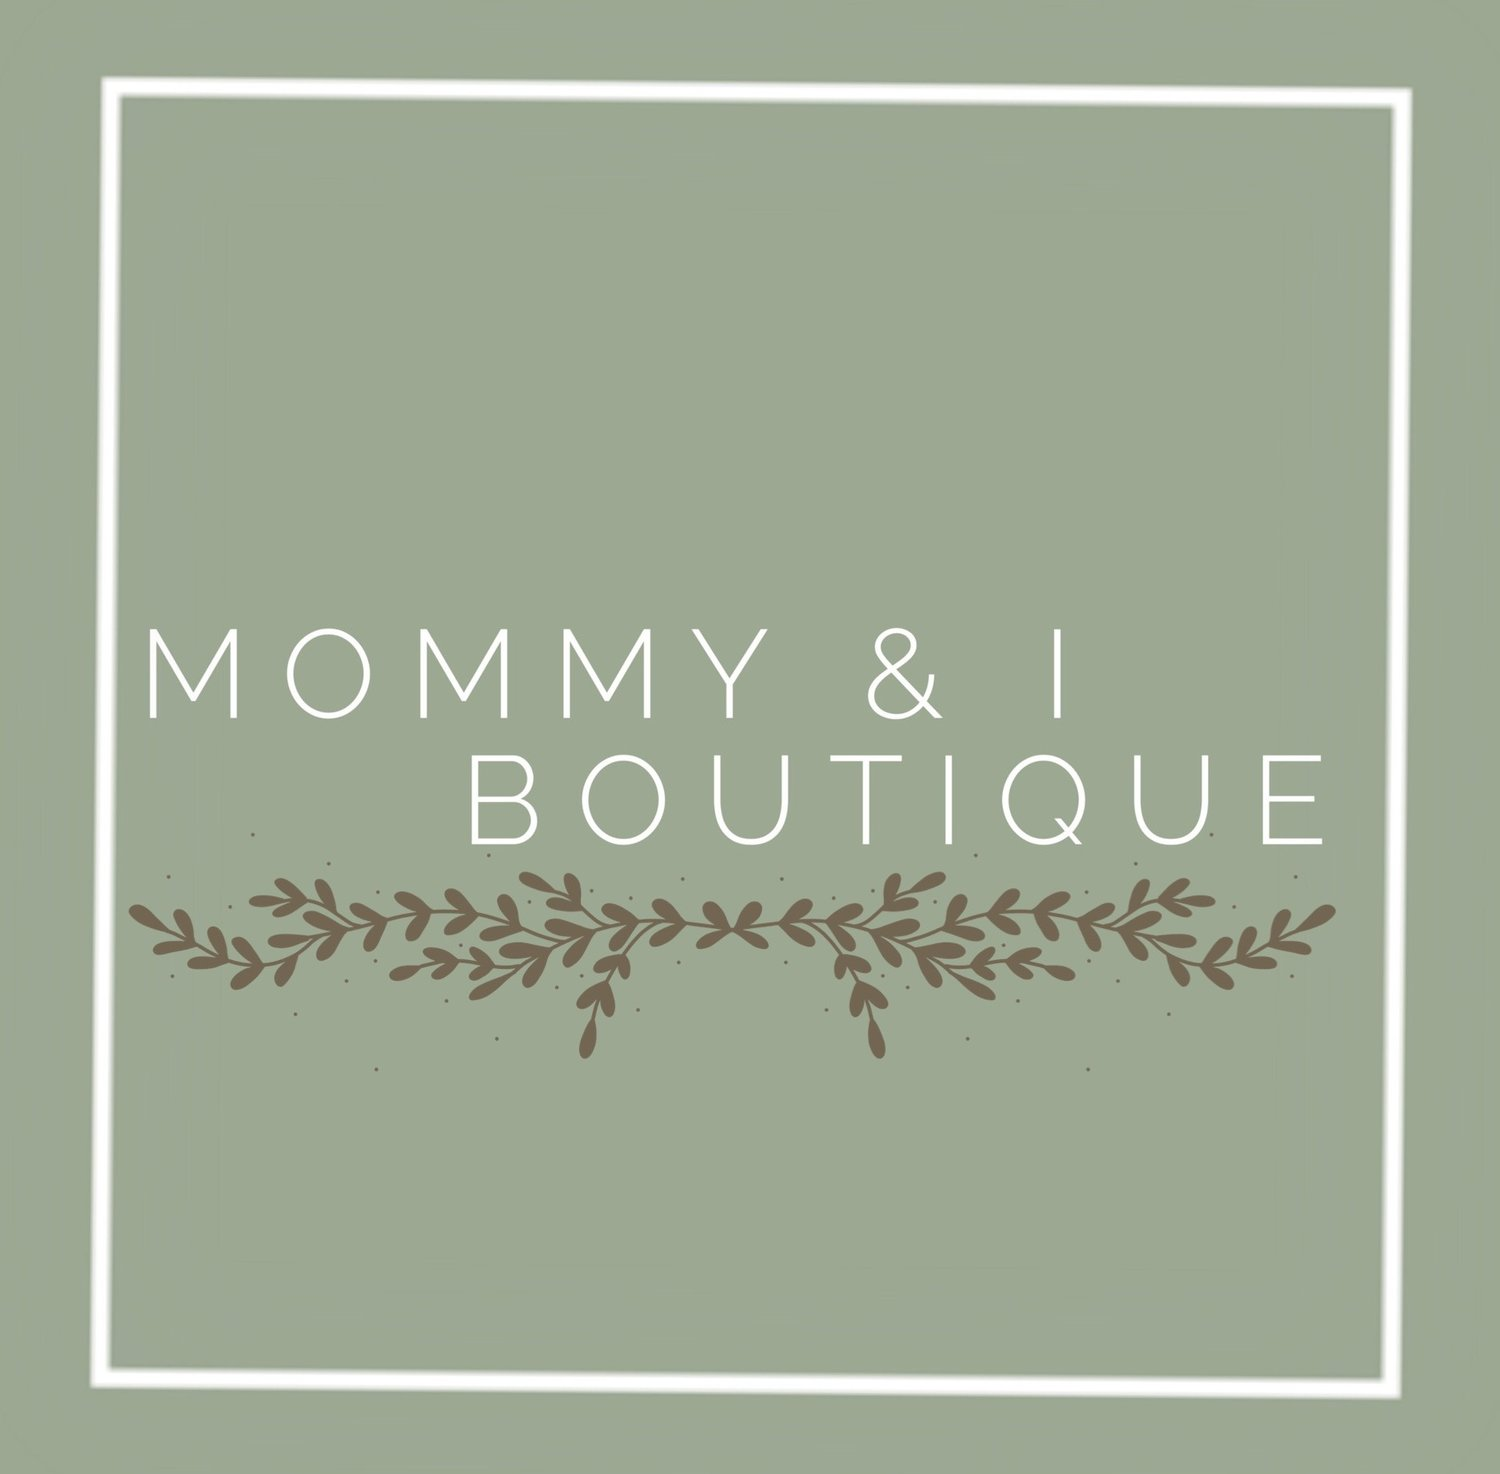 MOMMY & I BOUTIQUE